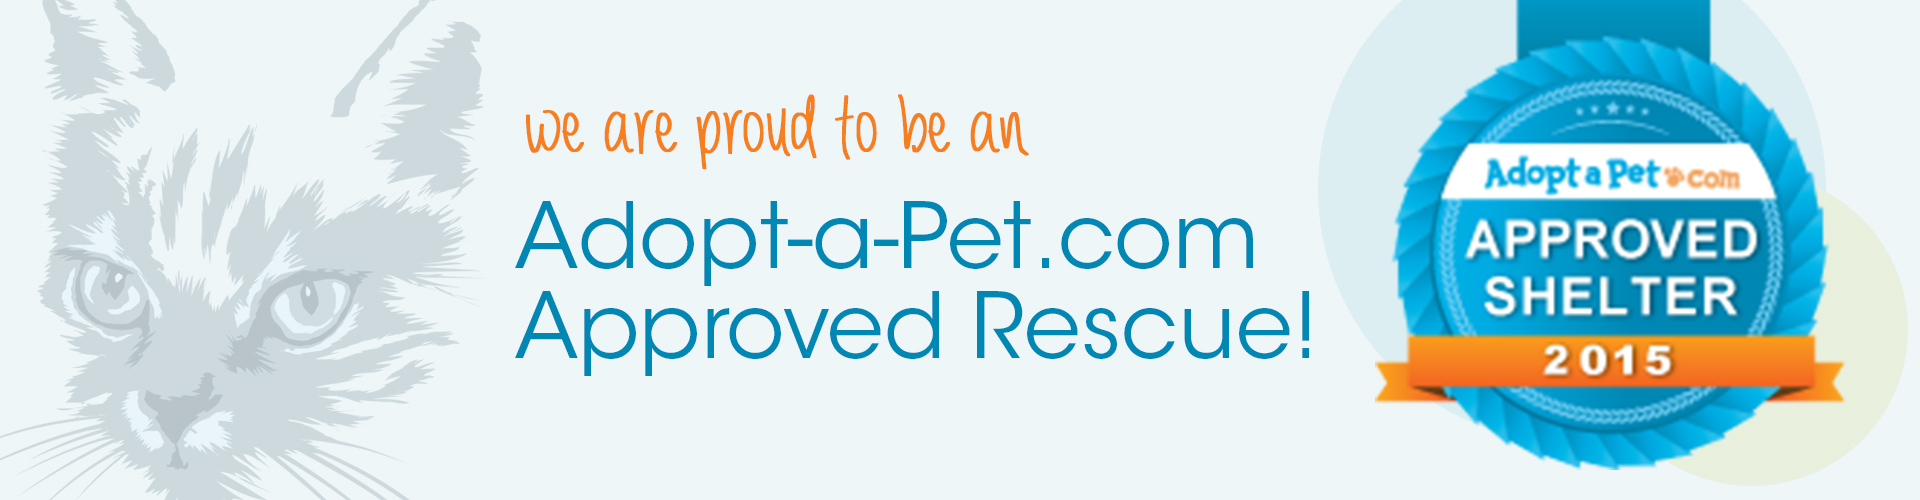 Adopt-a-Pet Approved